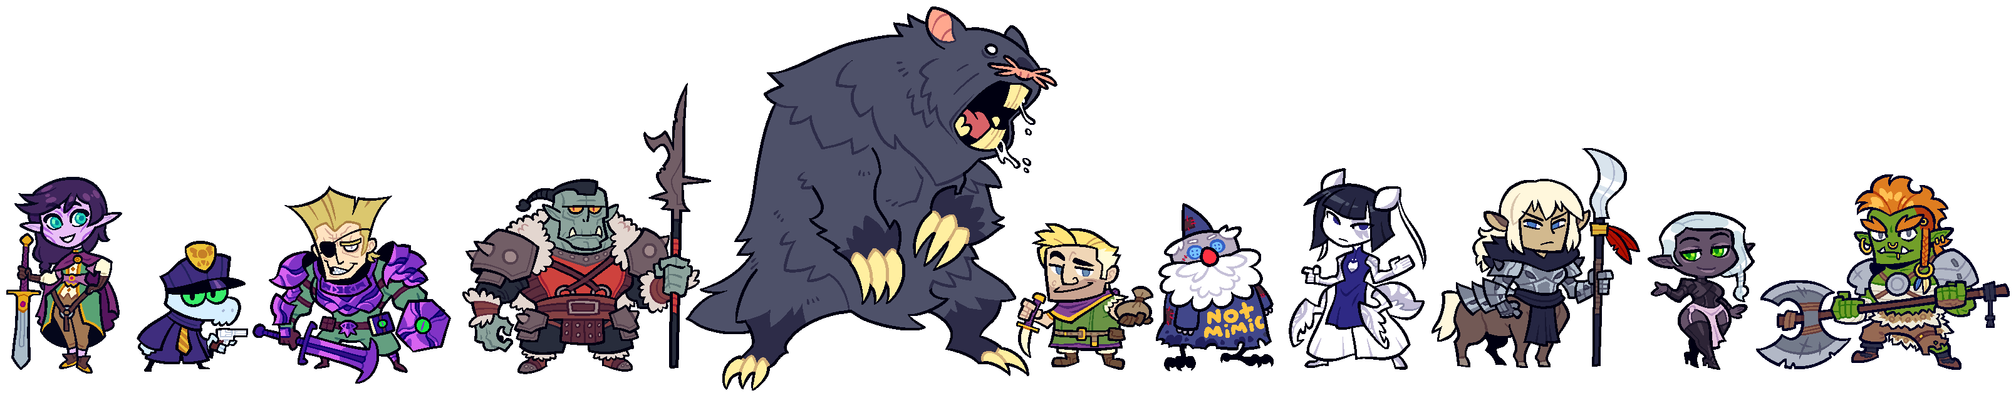 COMMISSION: DnD Group 10 by Cubesona